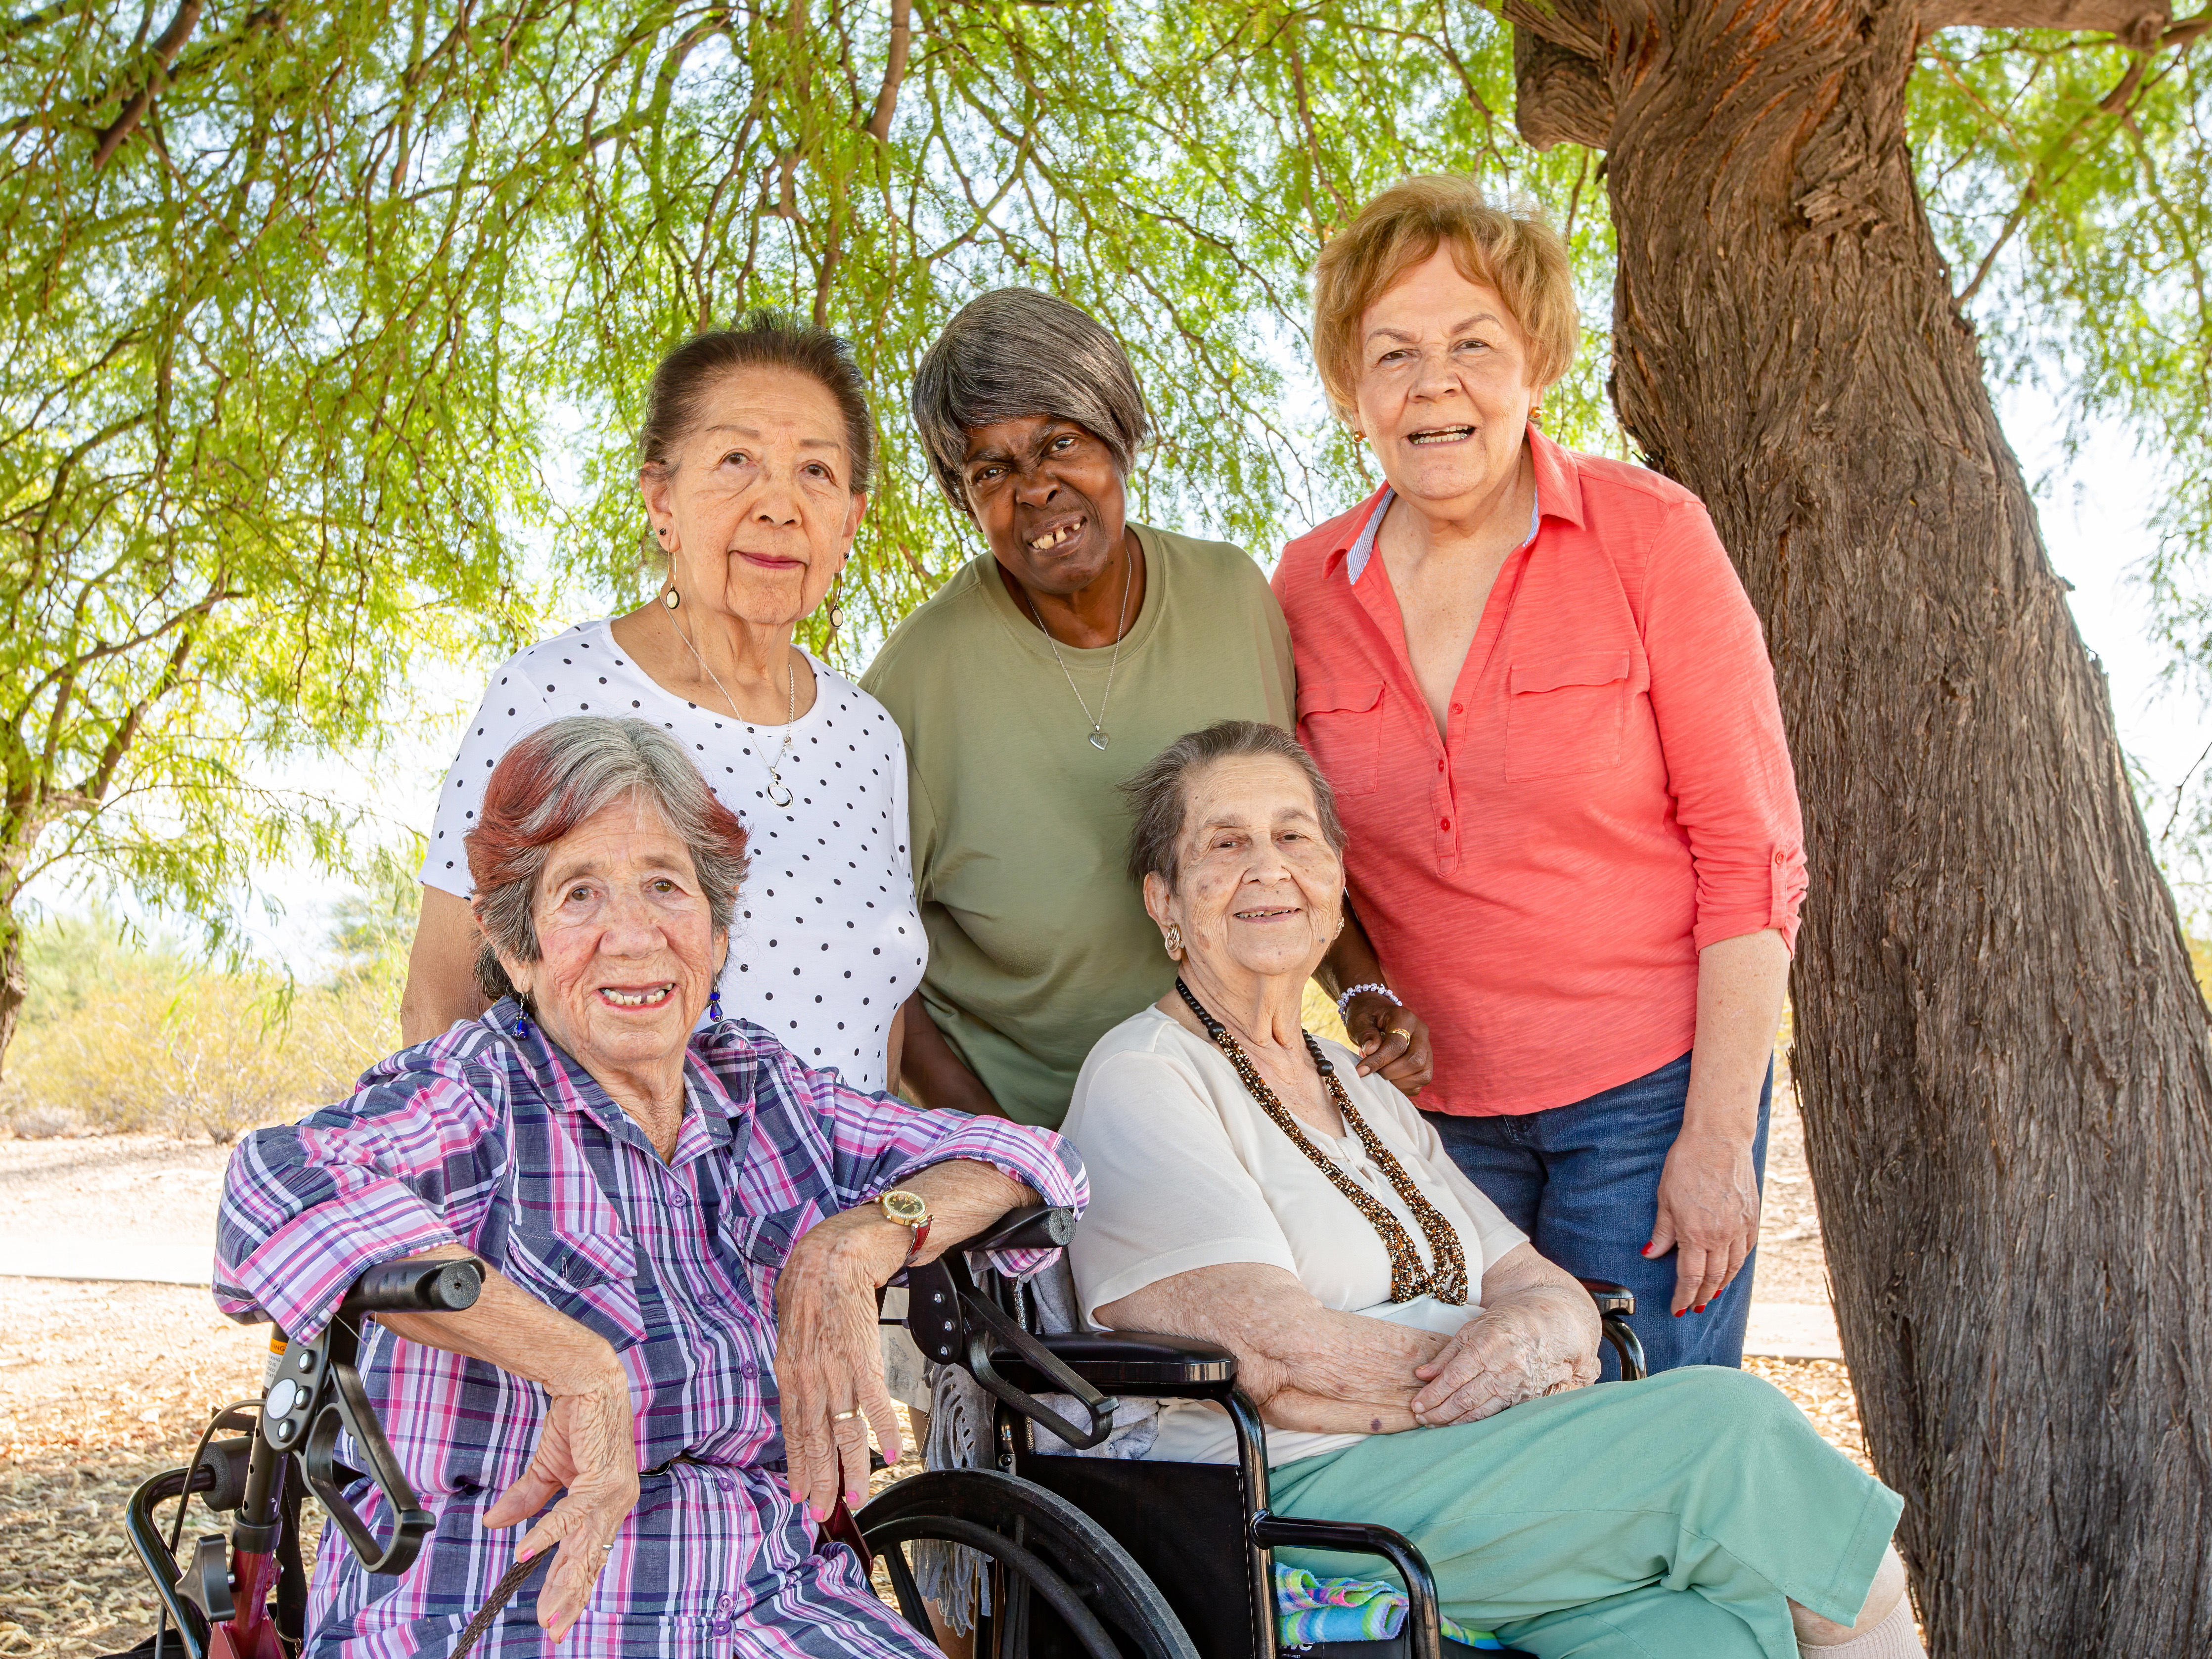 A group of diverse older people.